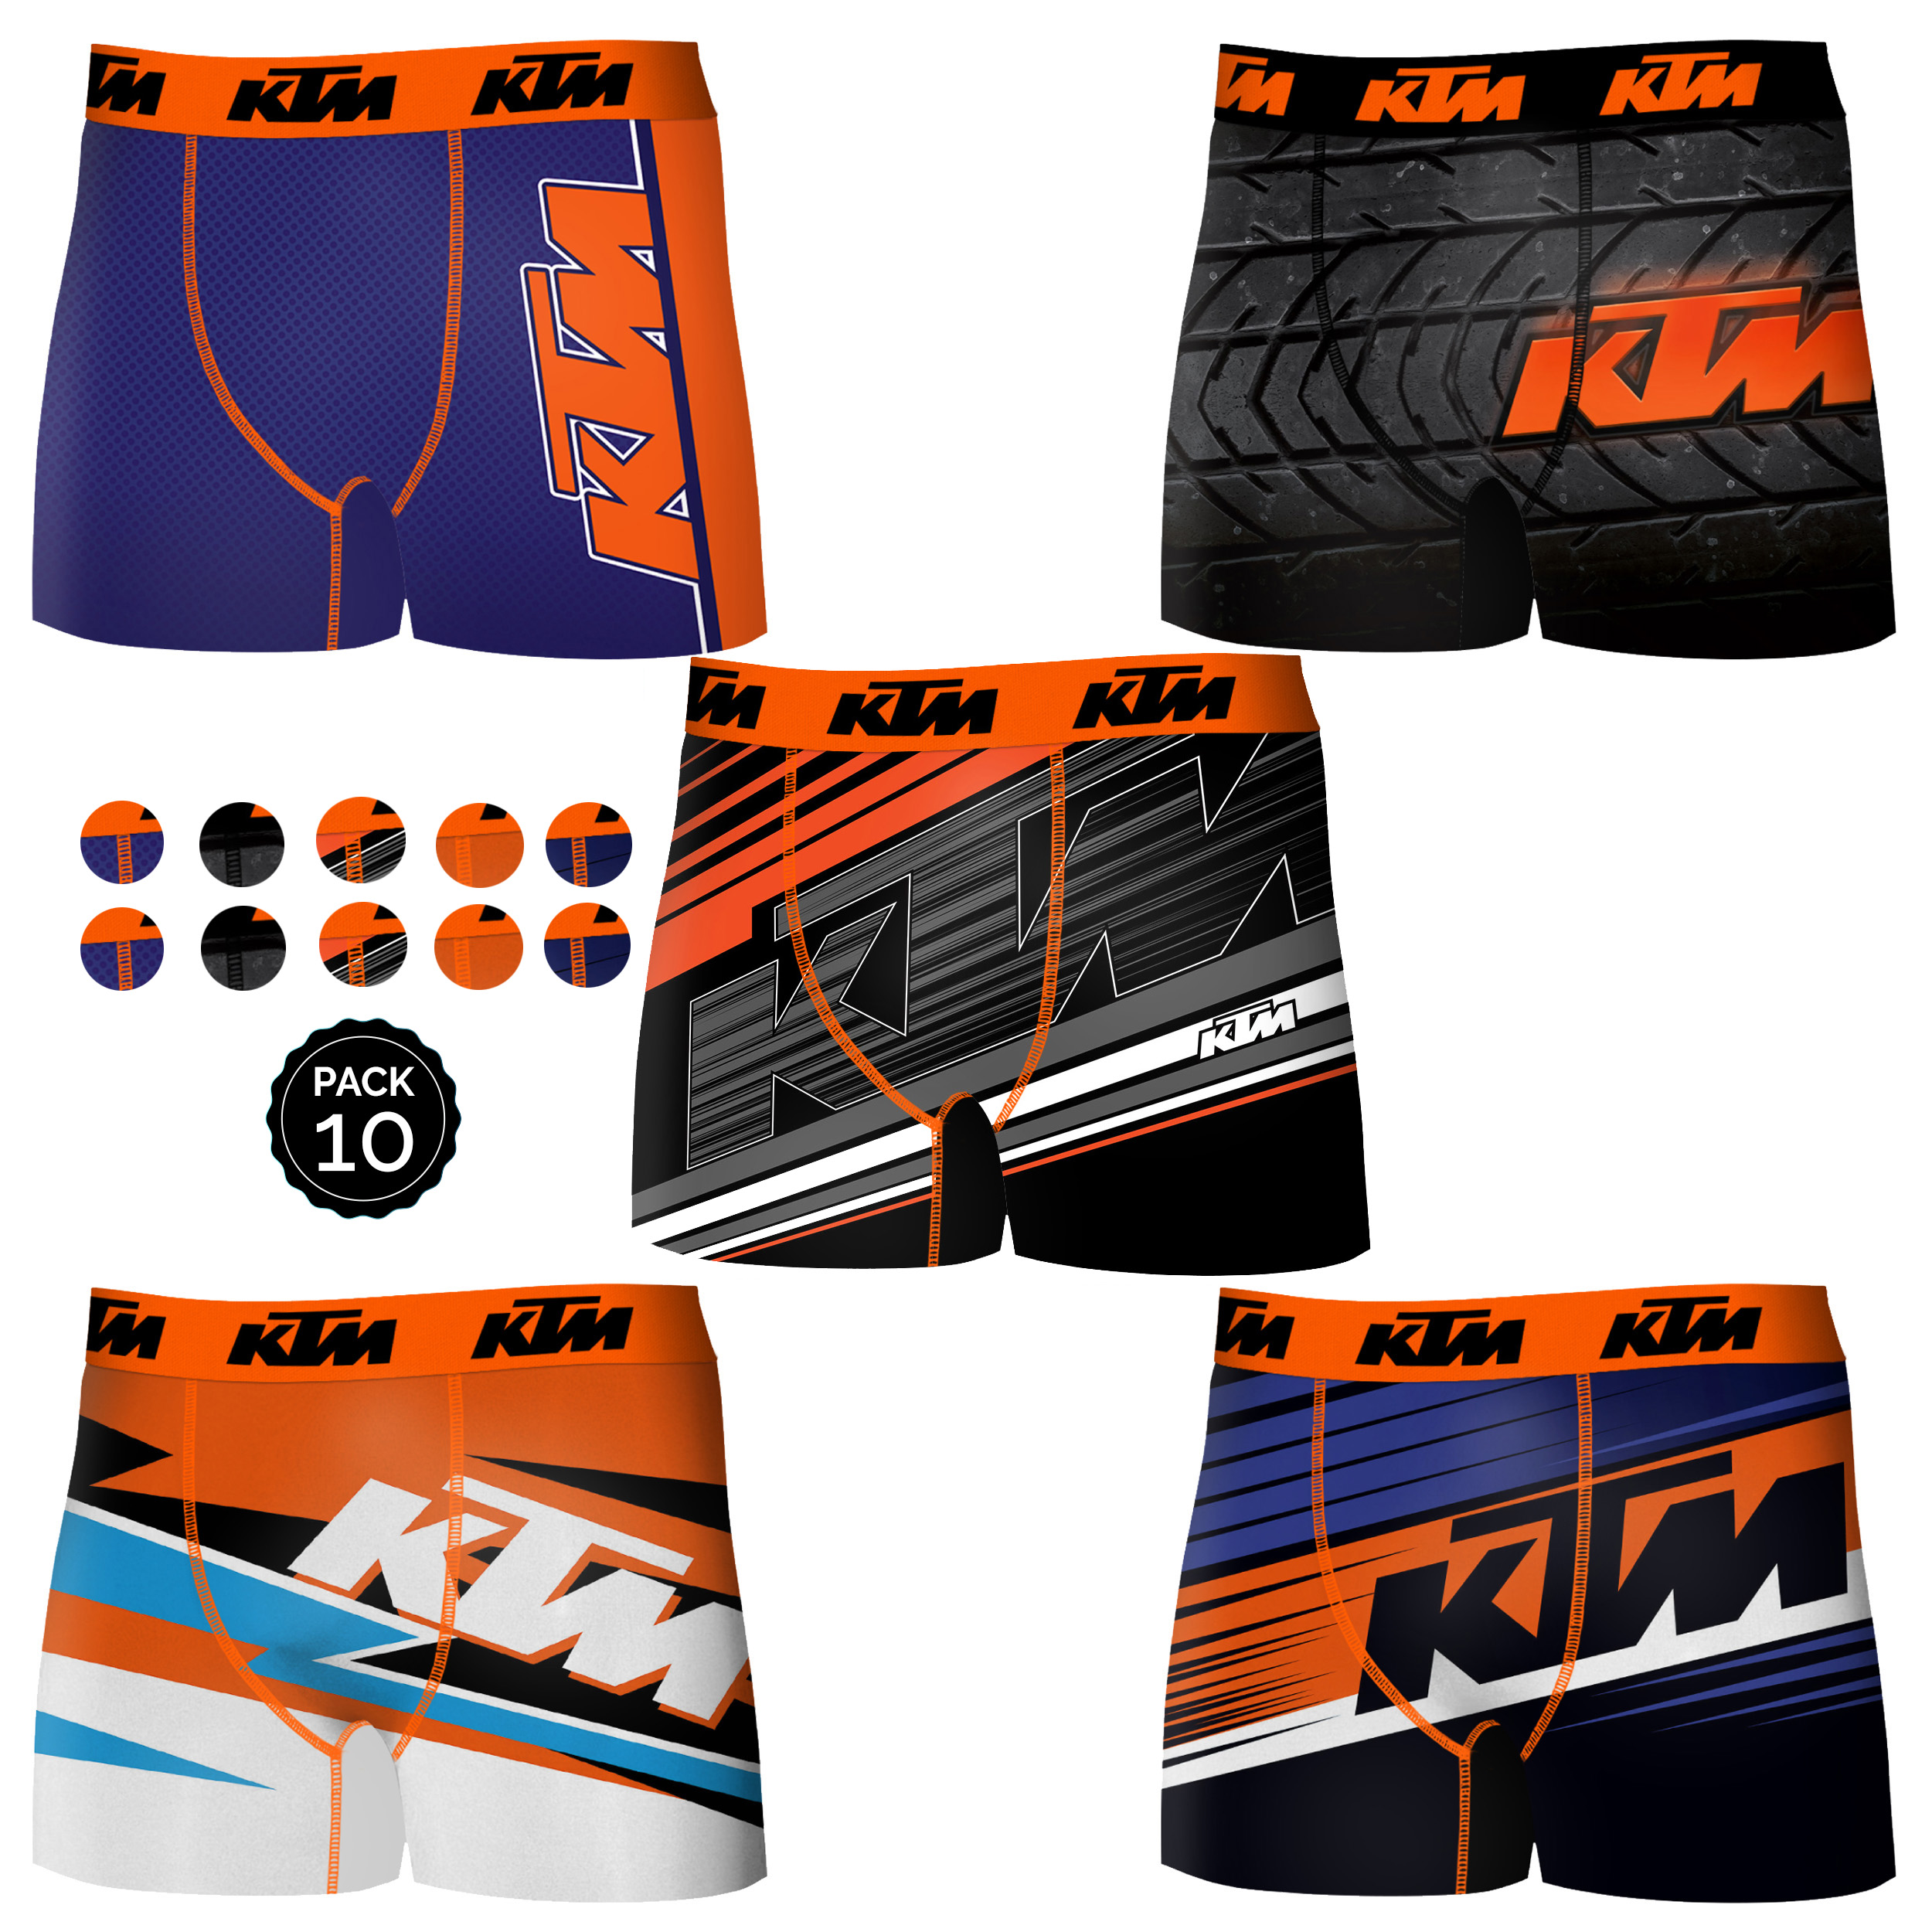 KTM Boxer Surprise Pack Of 5 Or 10 Units In Various Colors For Men